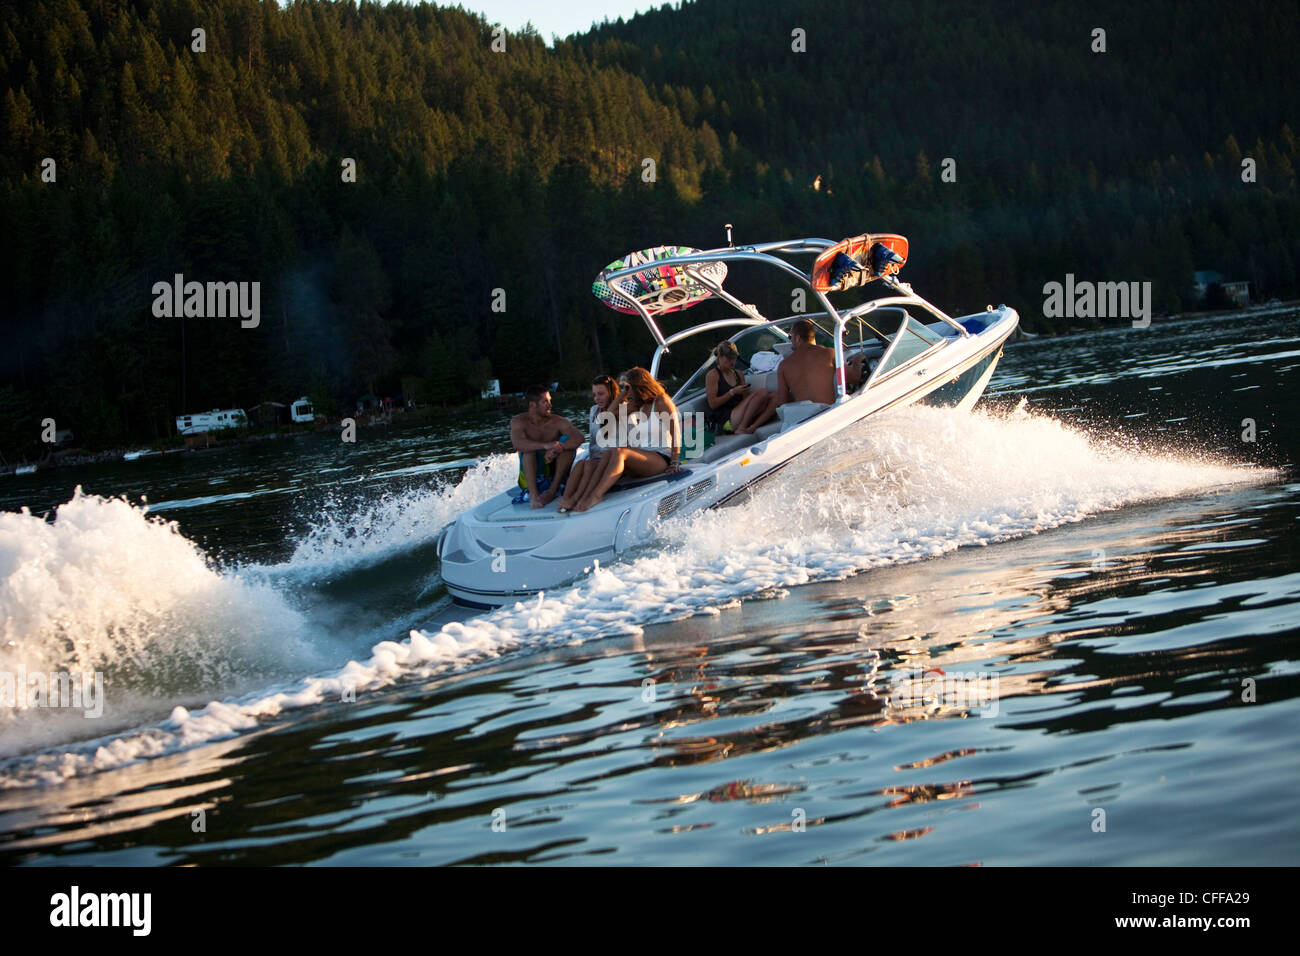 A group of young adults smile while cruising on a wakeboard boat a lake at sunset in Idaho. - Stock Image